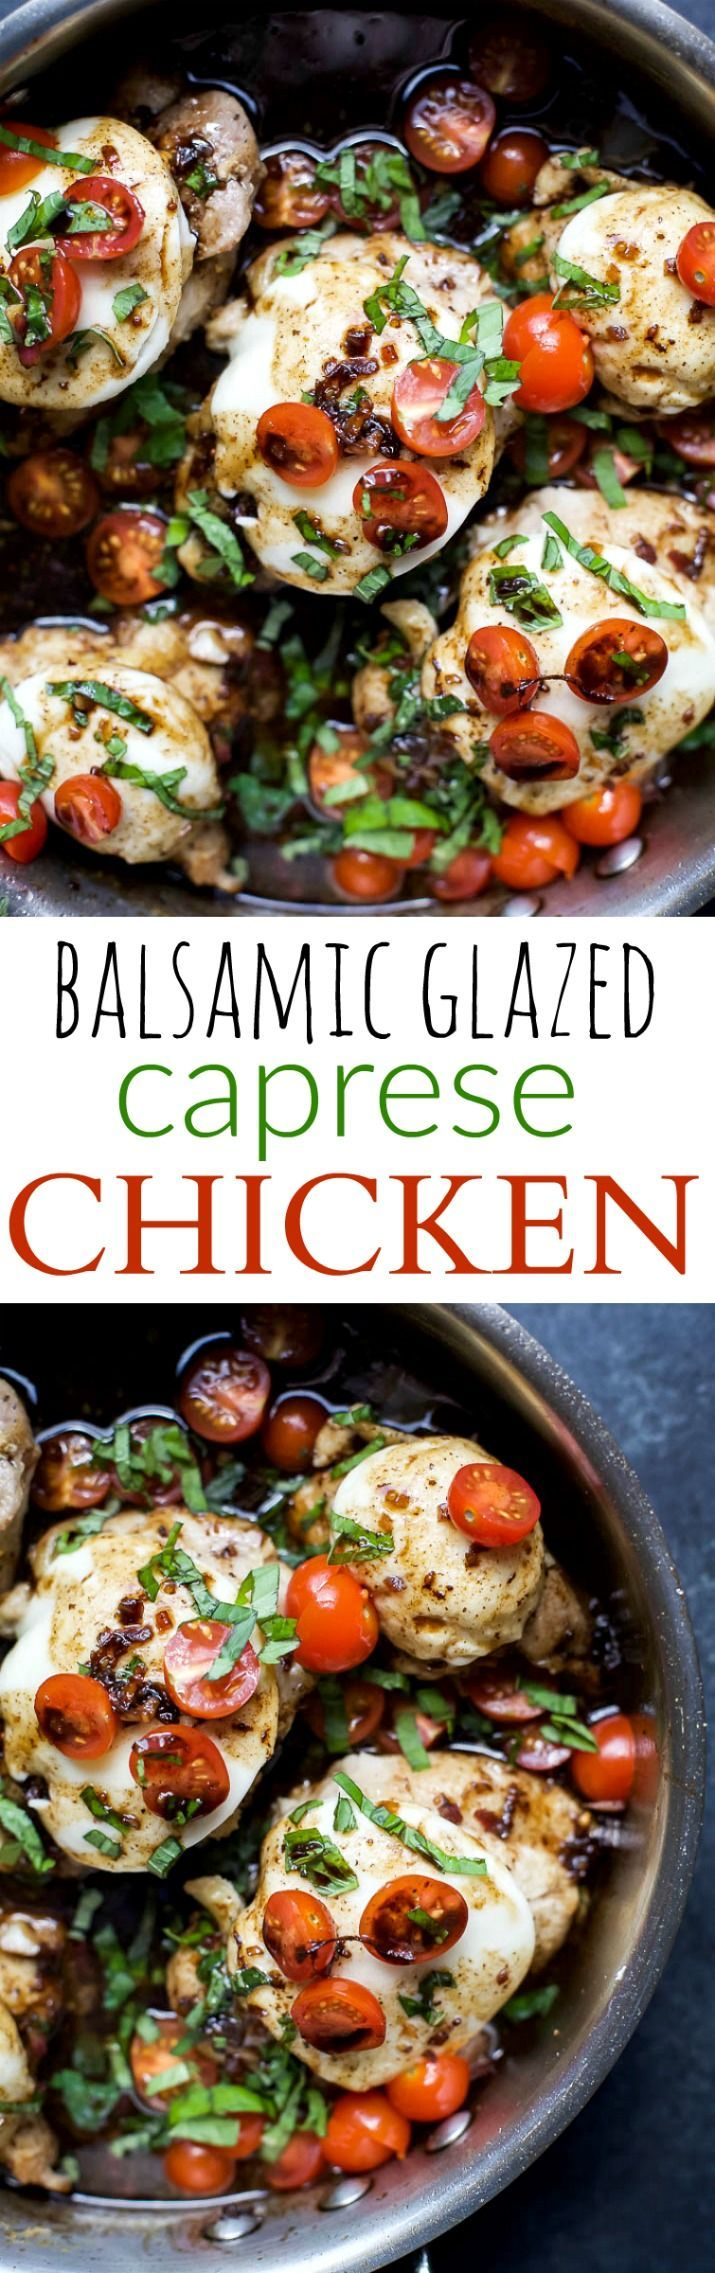 One Pan Balsamic Glazed Caprese Chicken - an easy recipe done in less than 40 minutes. Tender juicy Chicken cooked in balsamic glaze. I guarantee your family will be begging for you to make this again!   http://joyfulhealthyeats.com #glutenfree #highprotein